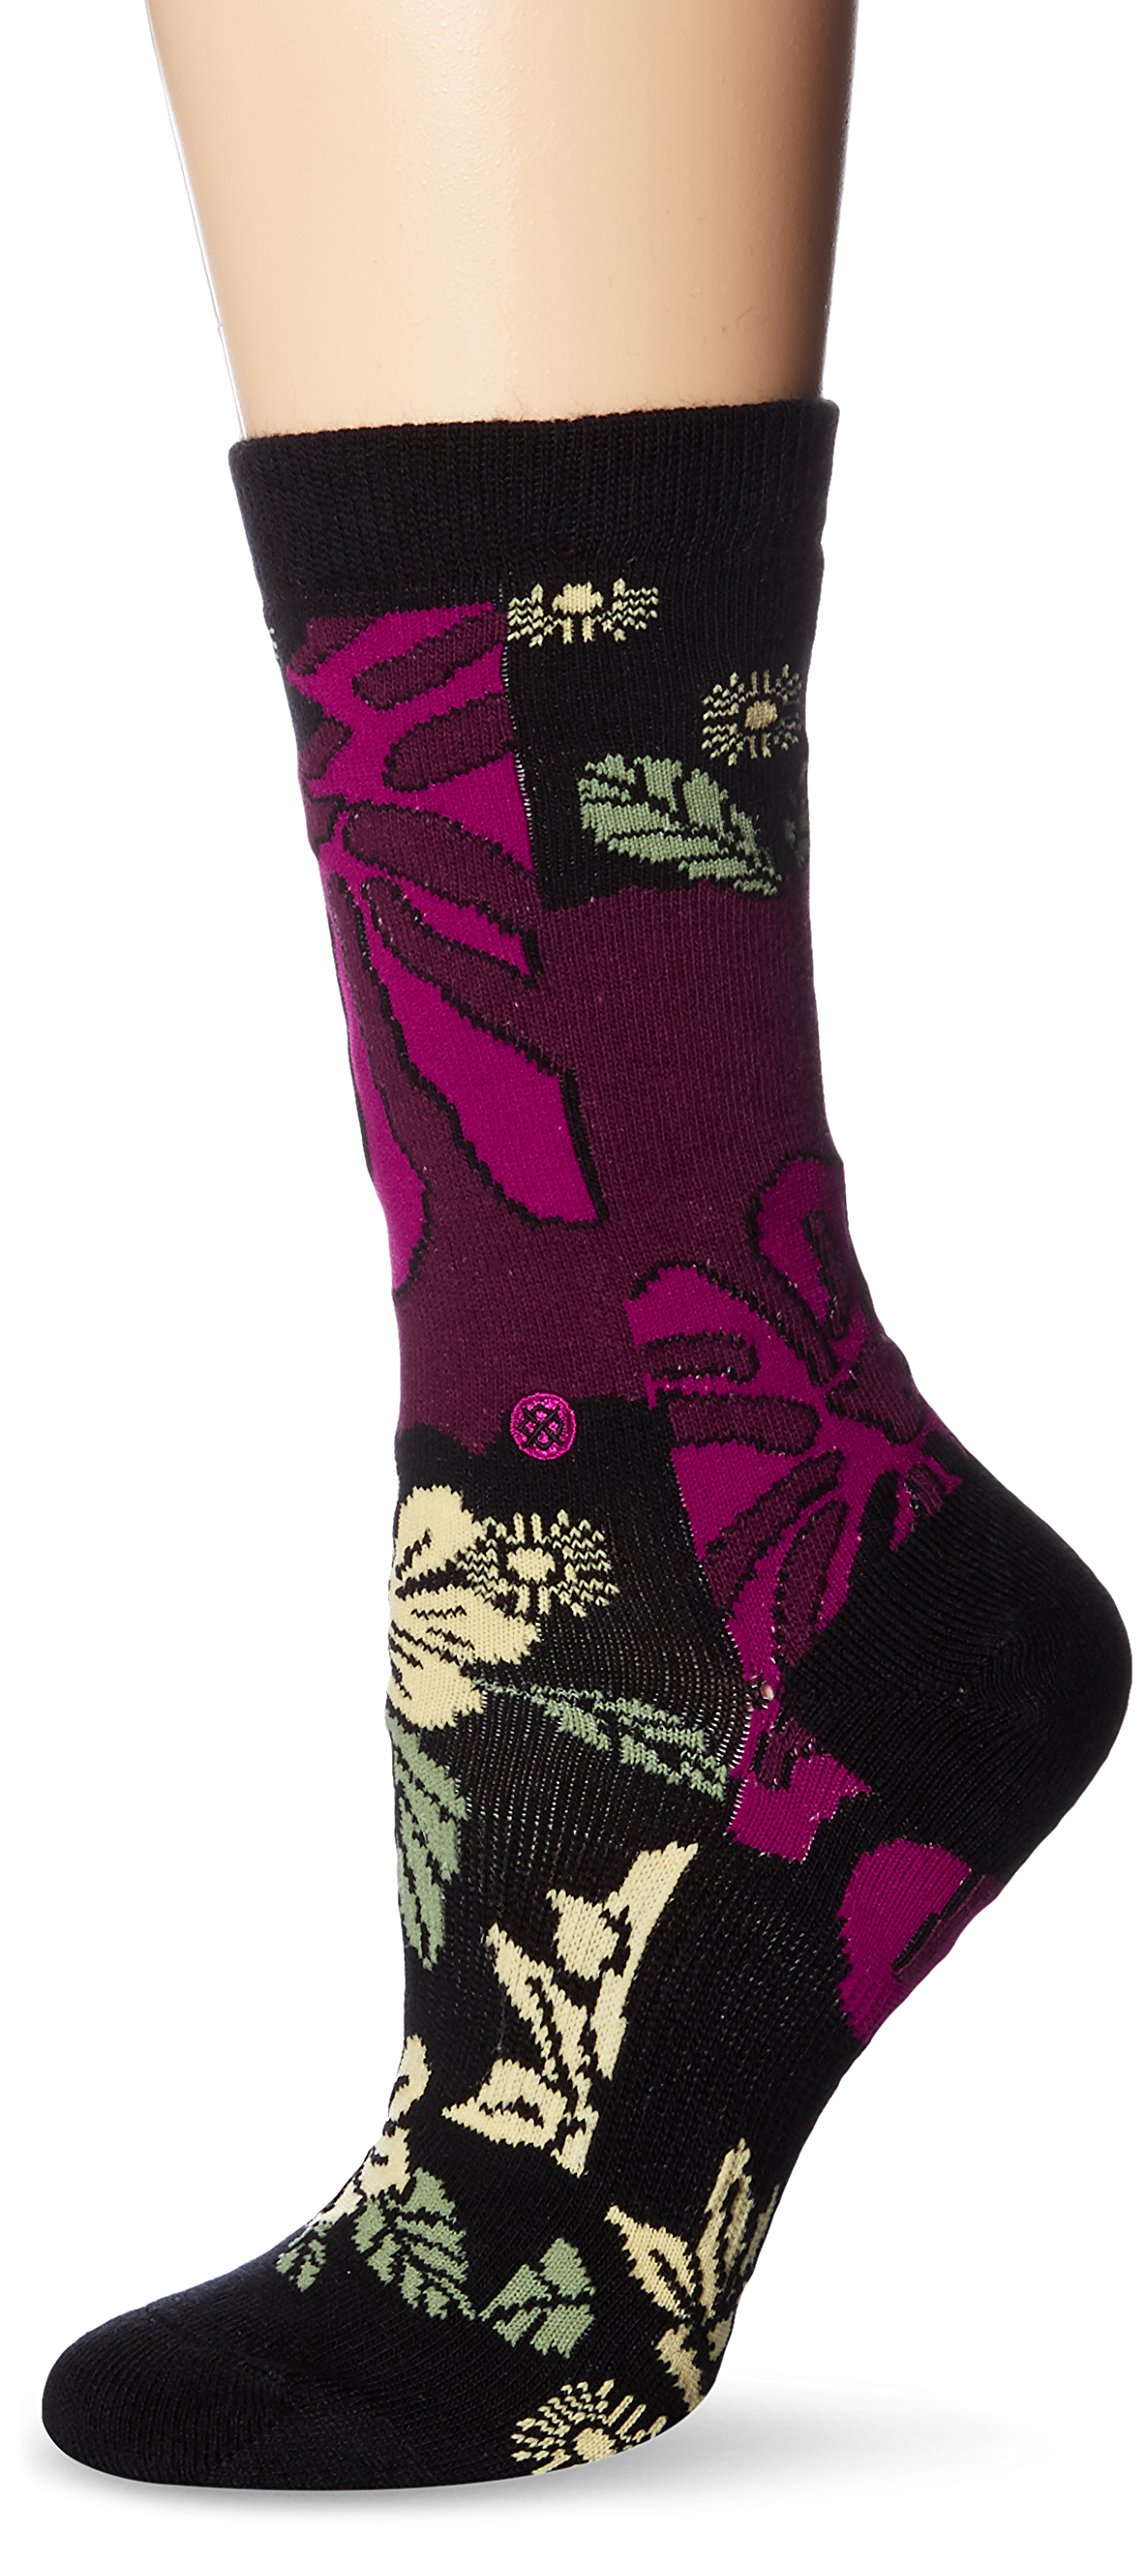 Stance Women's Rihanna Lotus Tomboy Crew Sock, Pink, One Size